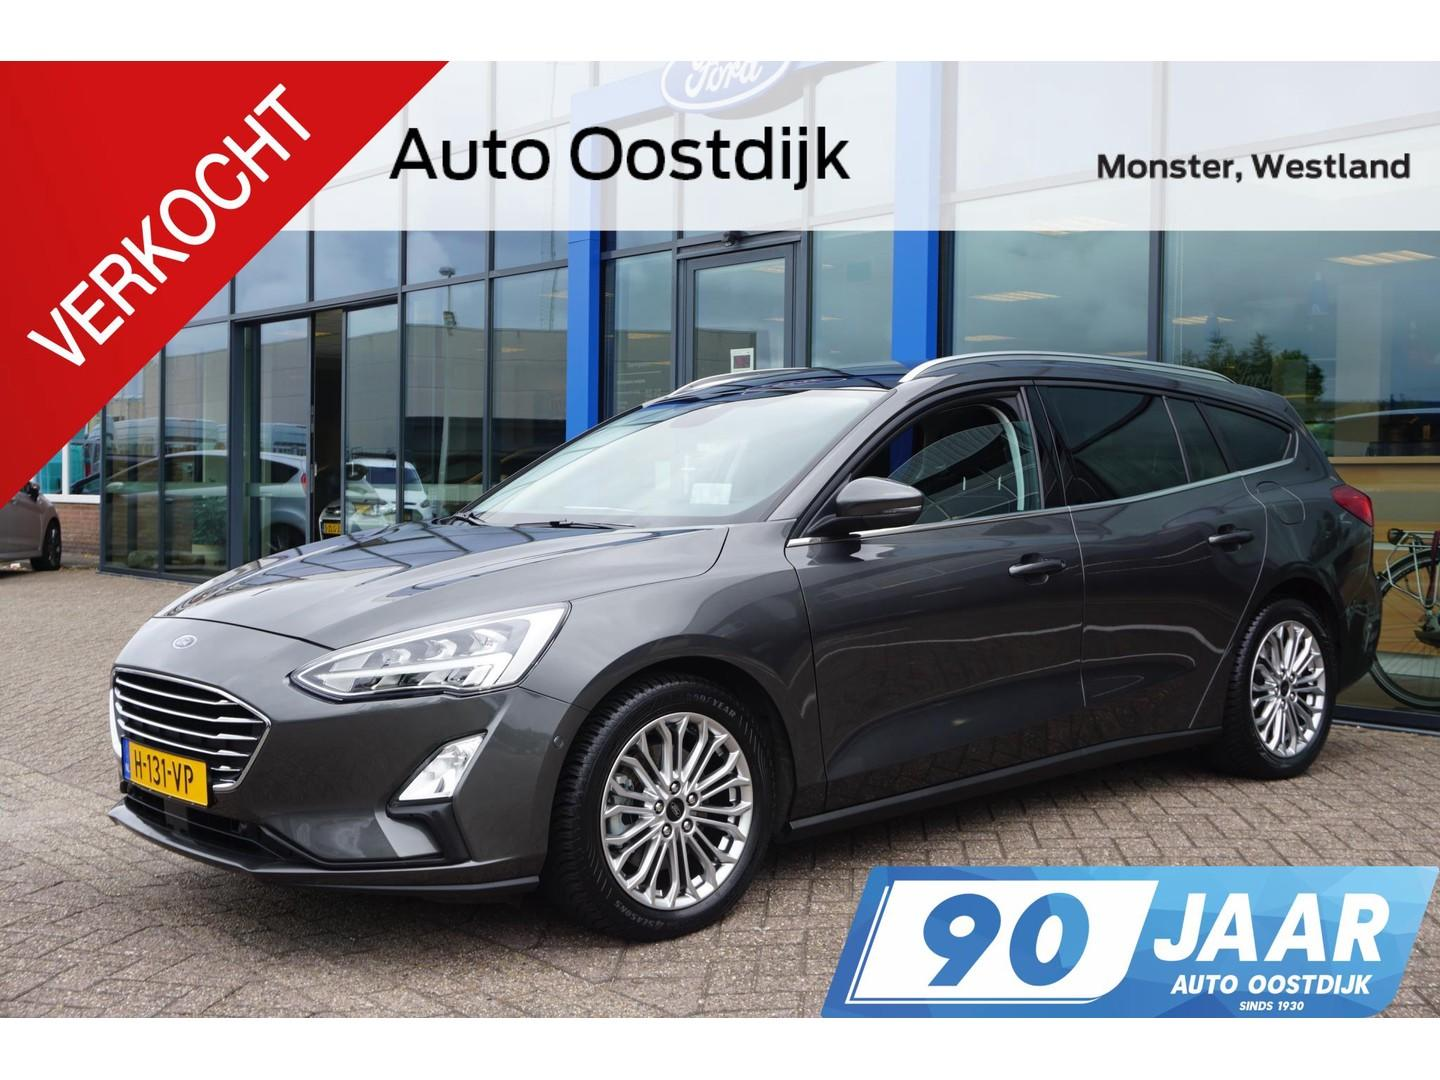 Ford Focus Wagon 1.5 ecoboost 150pk titanium wagon navi camera panodak head-up display winterpack *actie prijs*